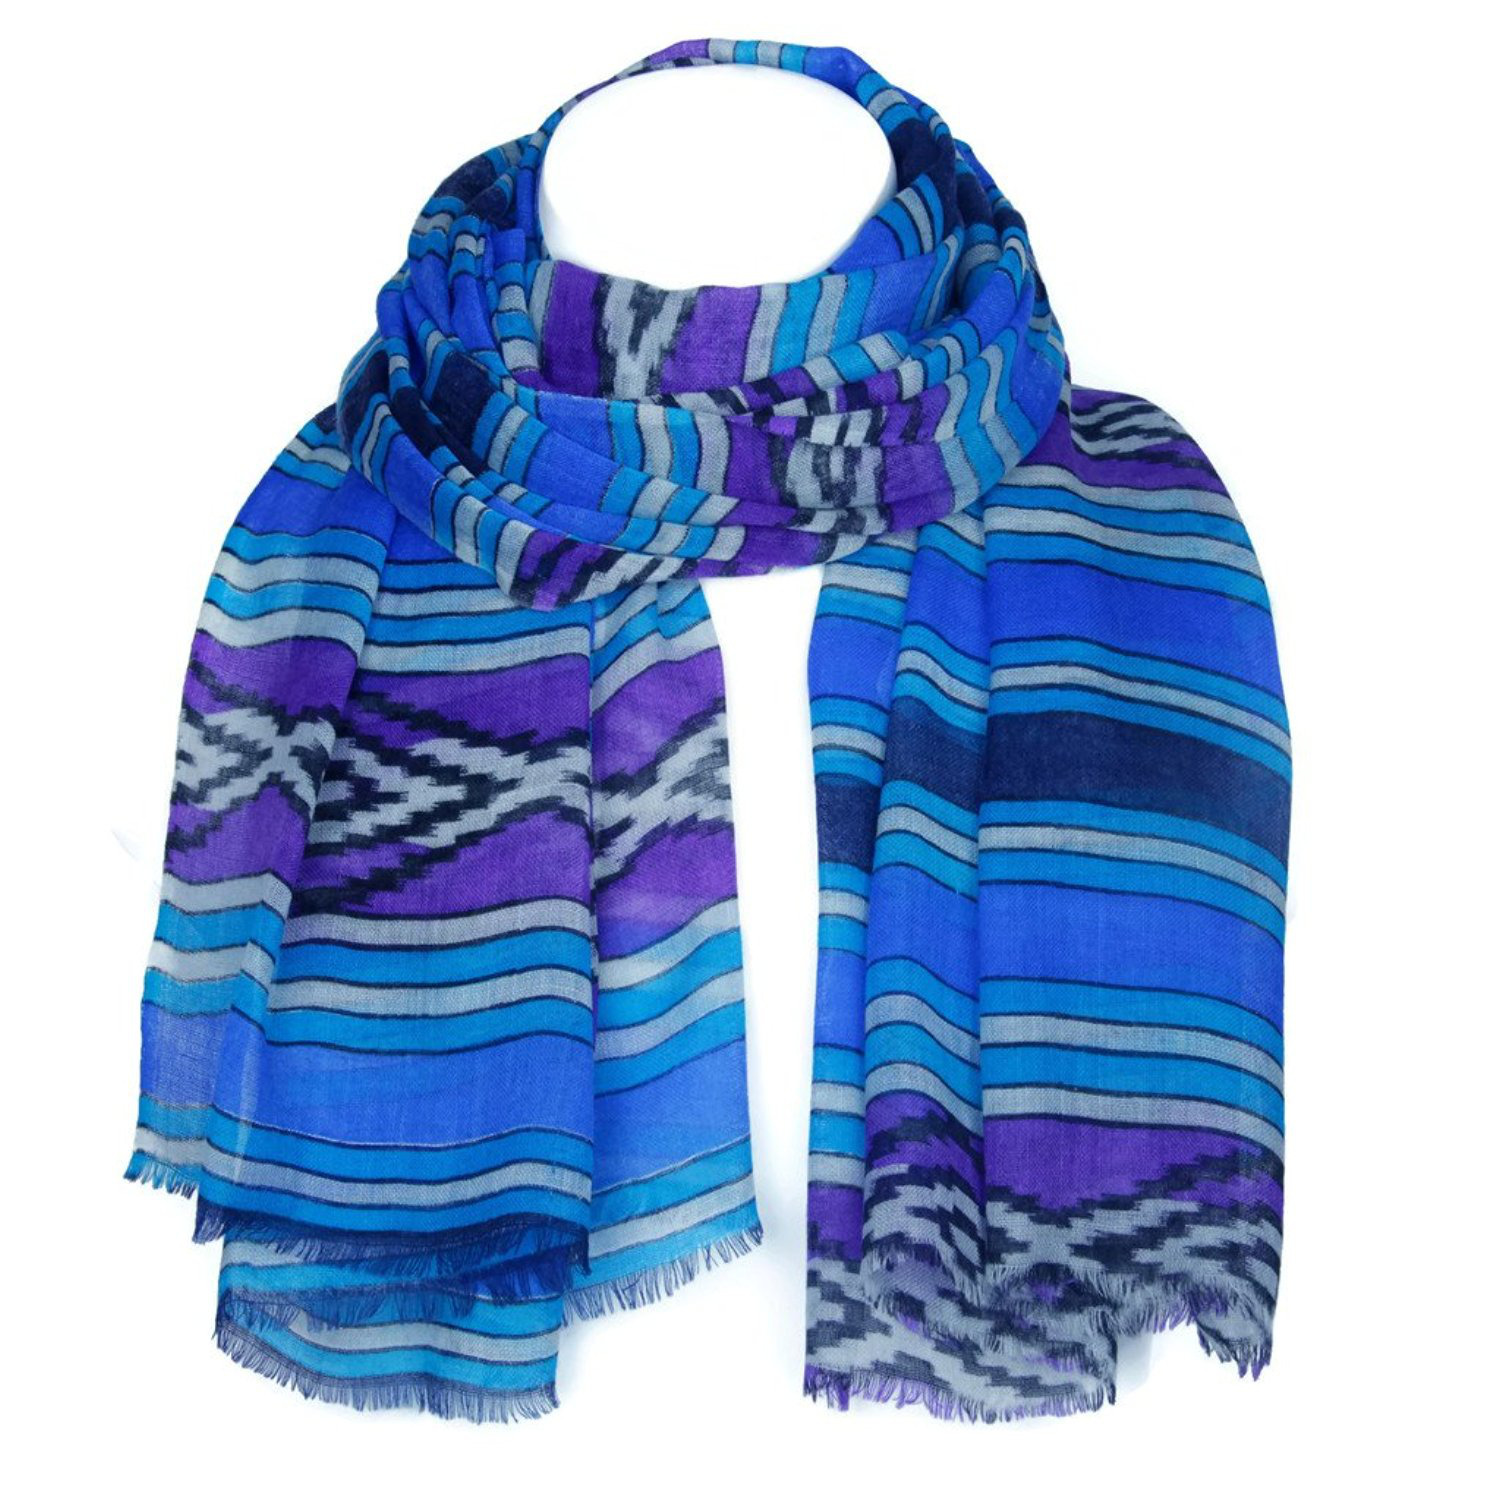 Women's Wool Scarf Girls Ladies Long Shawls Wraps Scarves Stoles Kashmir KASHFAB